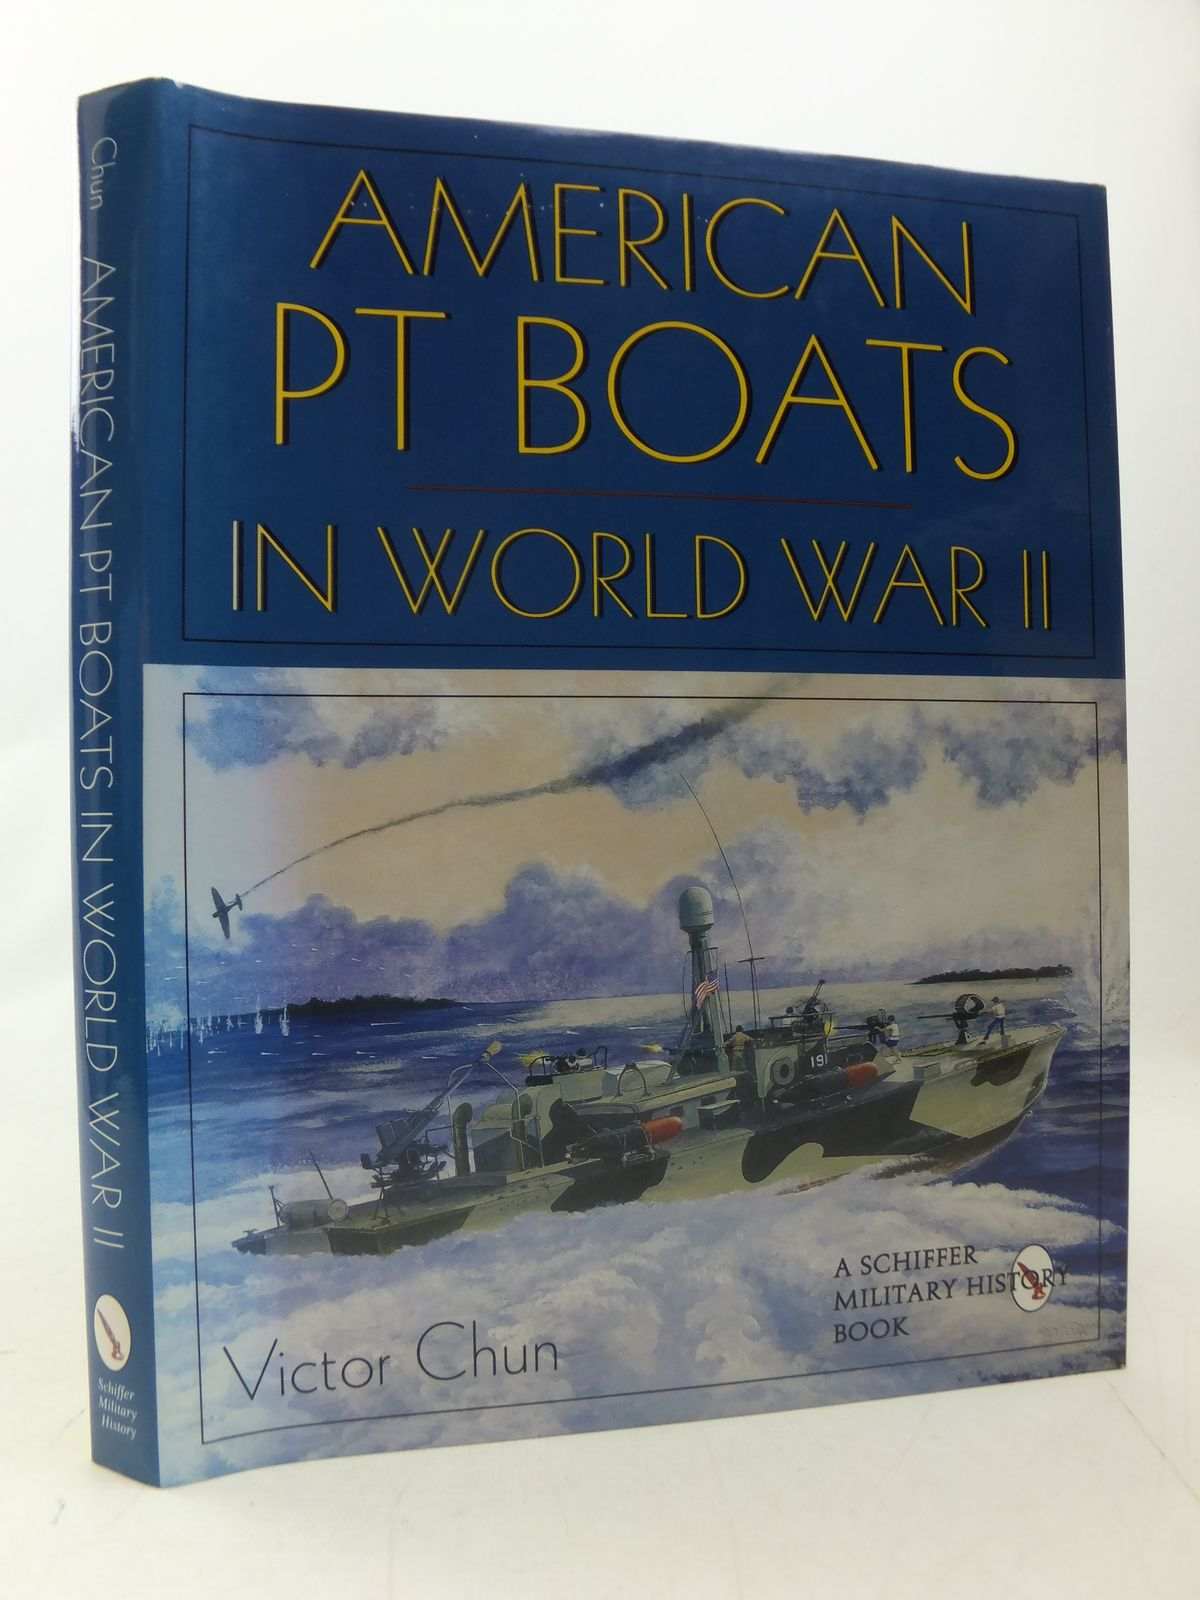 Photo of AMERICAN PT BOATS IN WORLD WAR II A PICTORIAL HISTORY written by Chun, Victor published by Schiffer Military History (STOCK CODE: 1808870)  for sale by Stella & Rose's Books